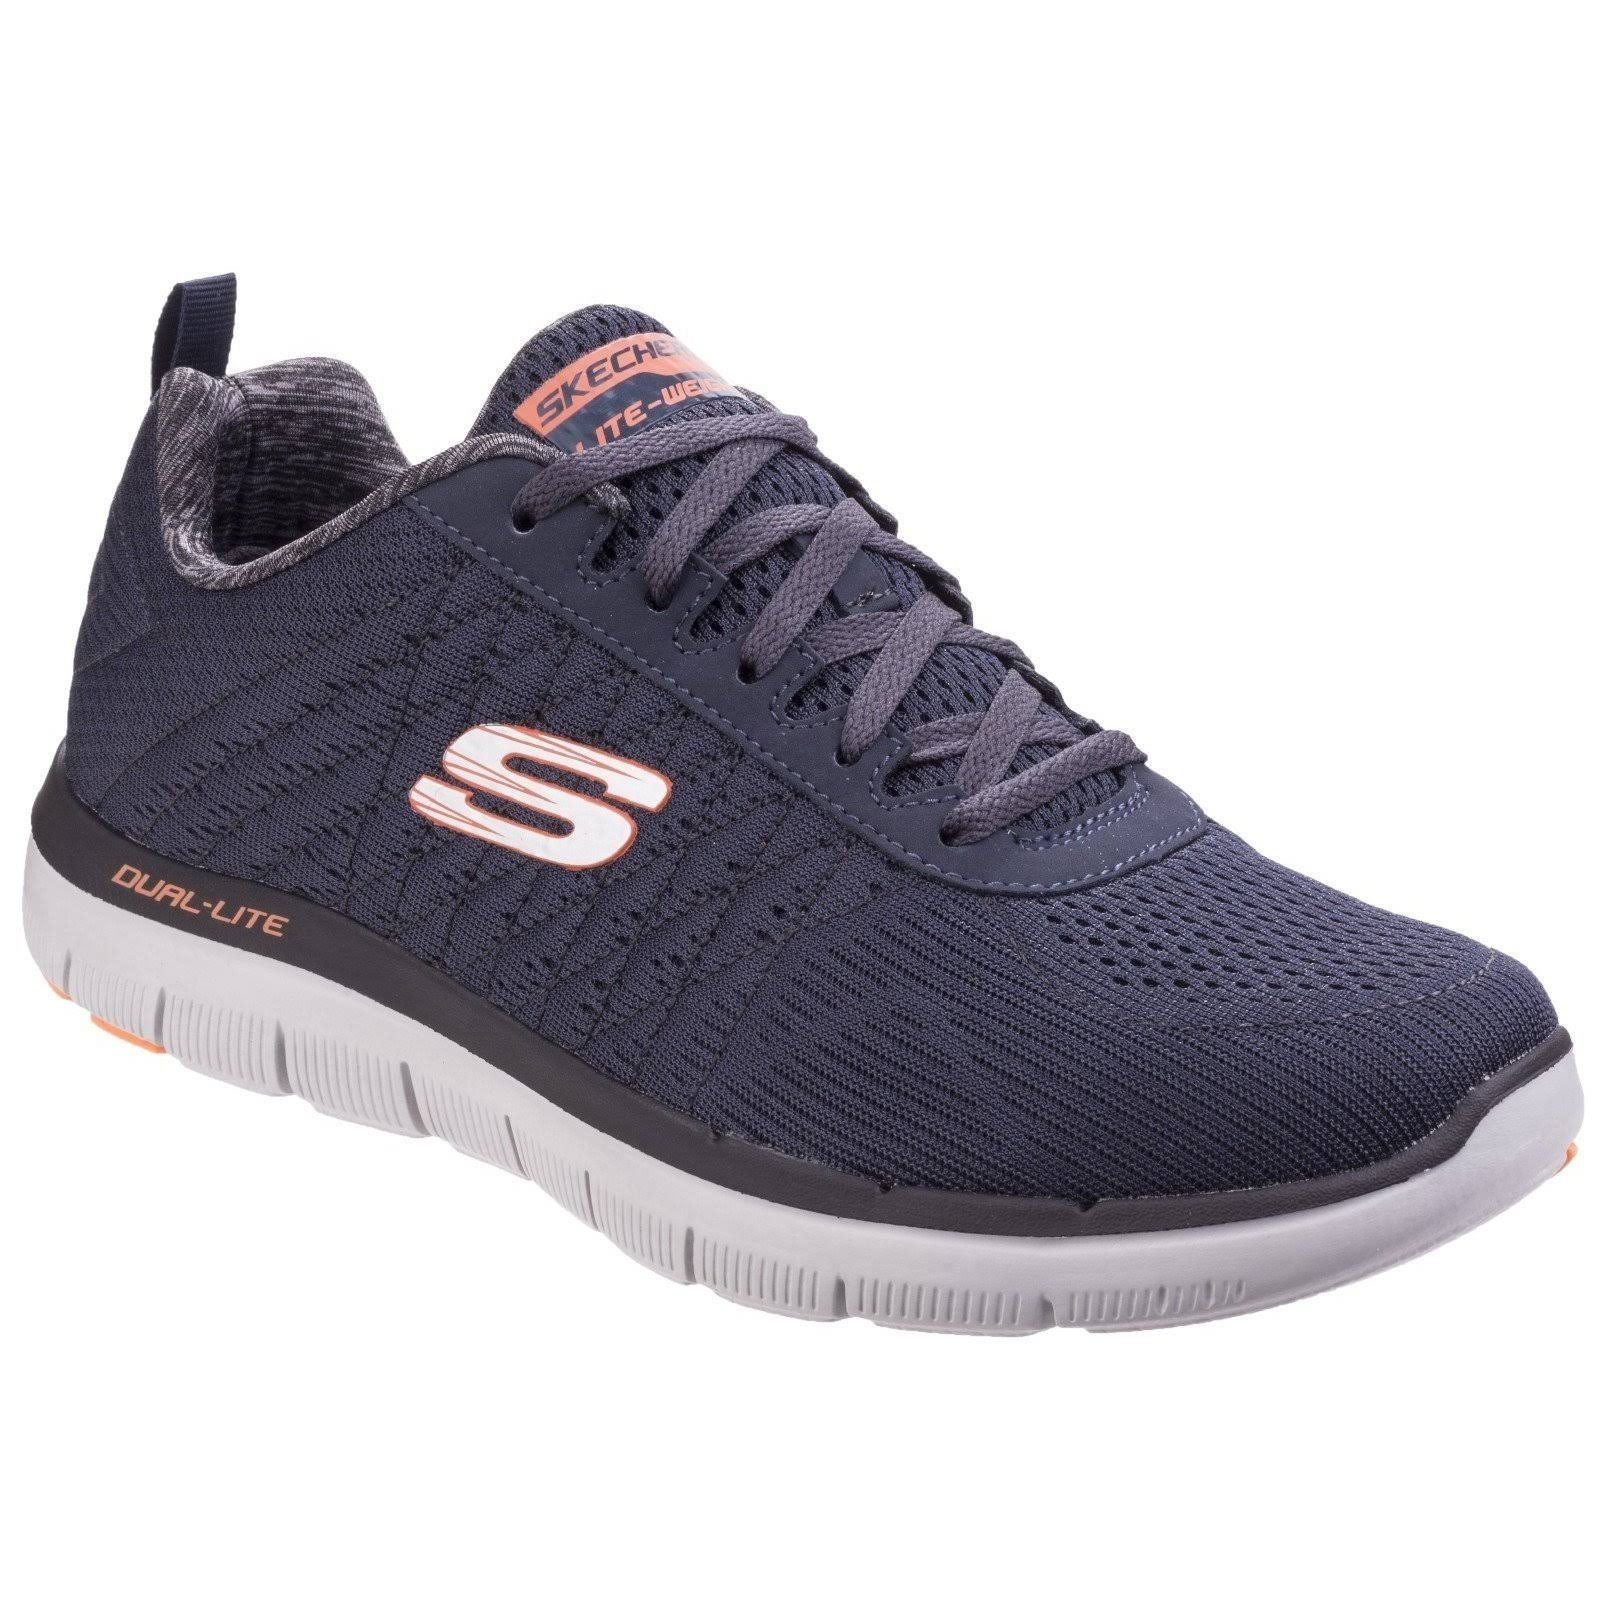 Up Skechers Lace Dark blue Trainer In 52185 Navy ERqxSCRZw